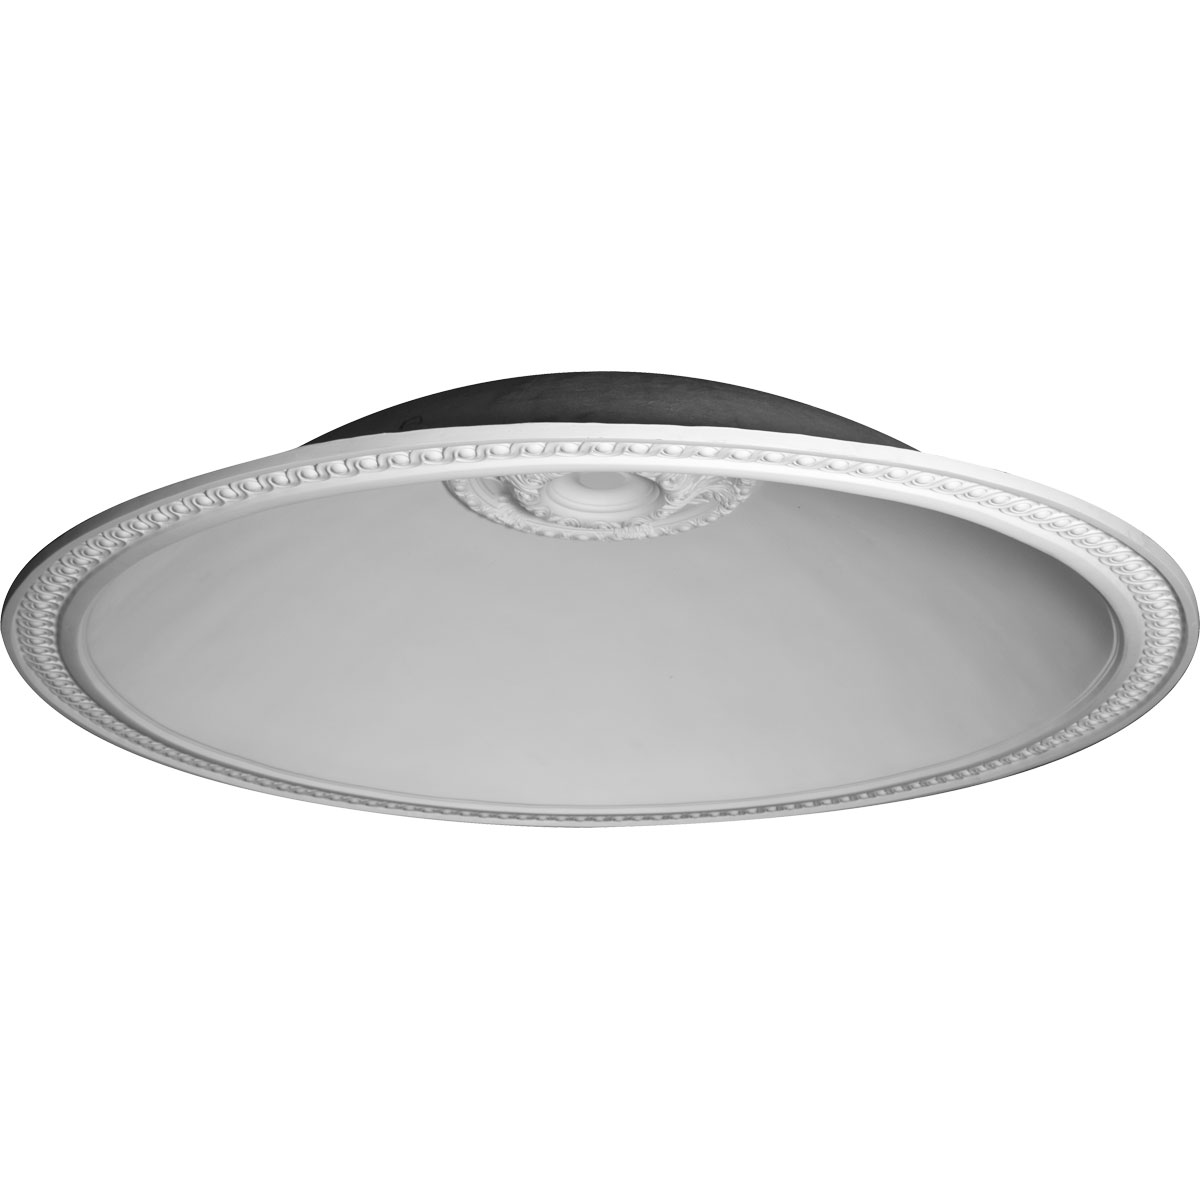 "79 1/2""OD x 70 1/2""ID x 16 1/4""D, Hillsborough Running Coin Ceiling Dome, 4 1/2""W Trim (70 1/2"" Diameter x 16 1/2"" Rough Opening)"